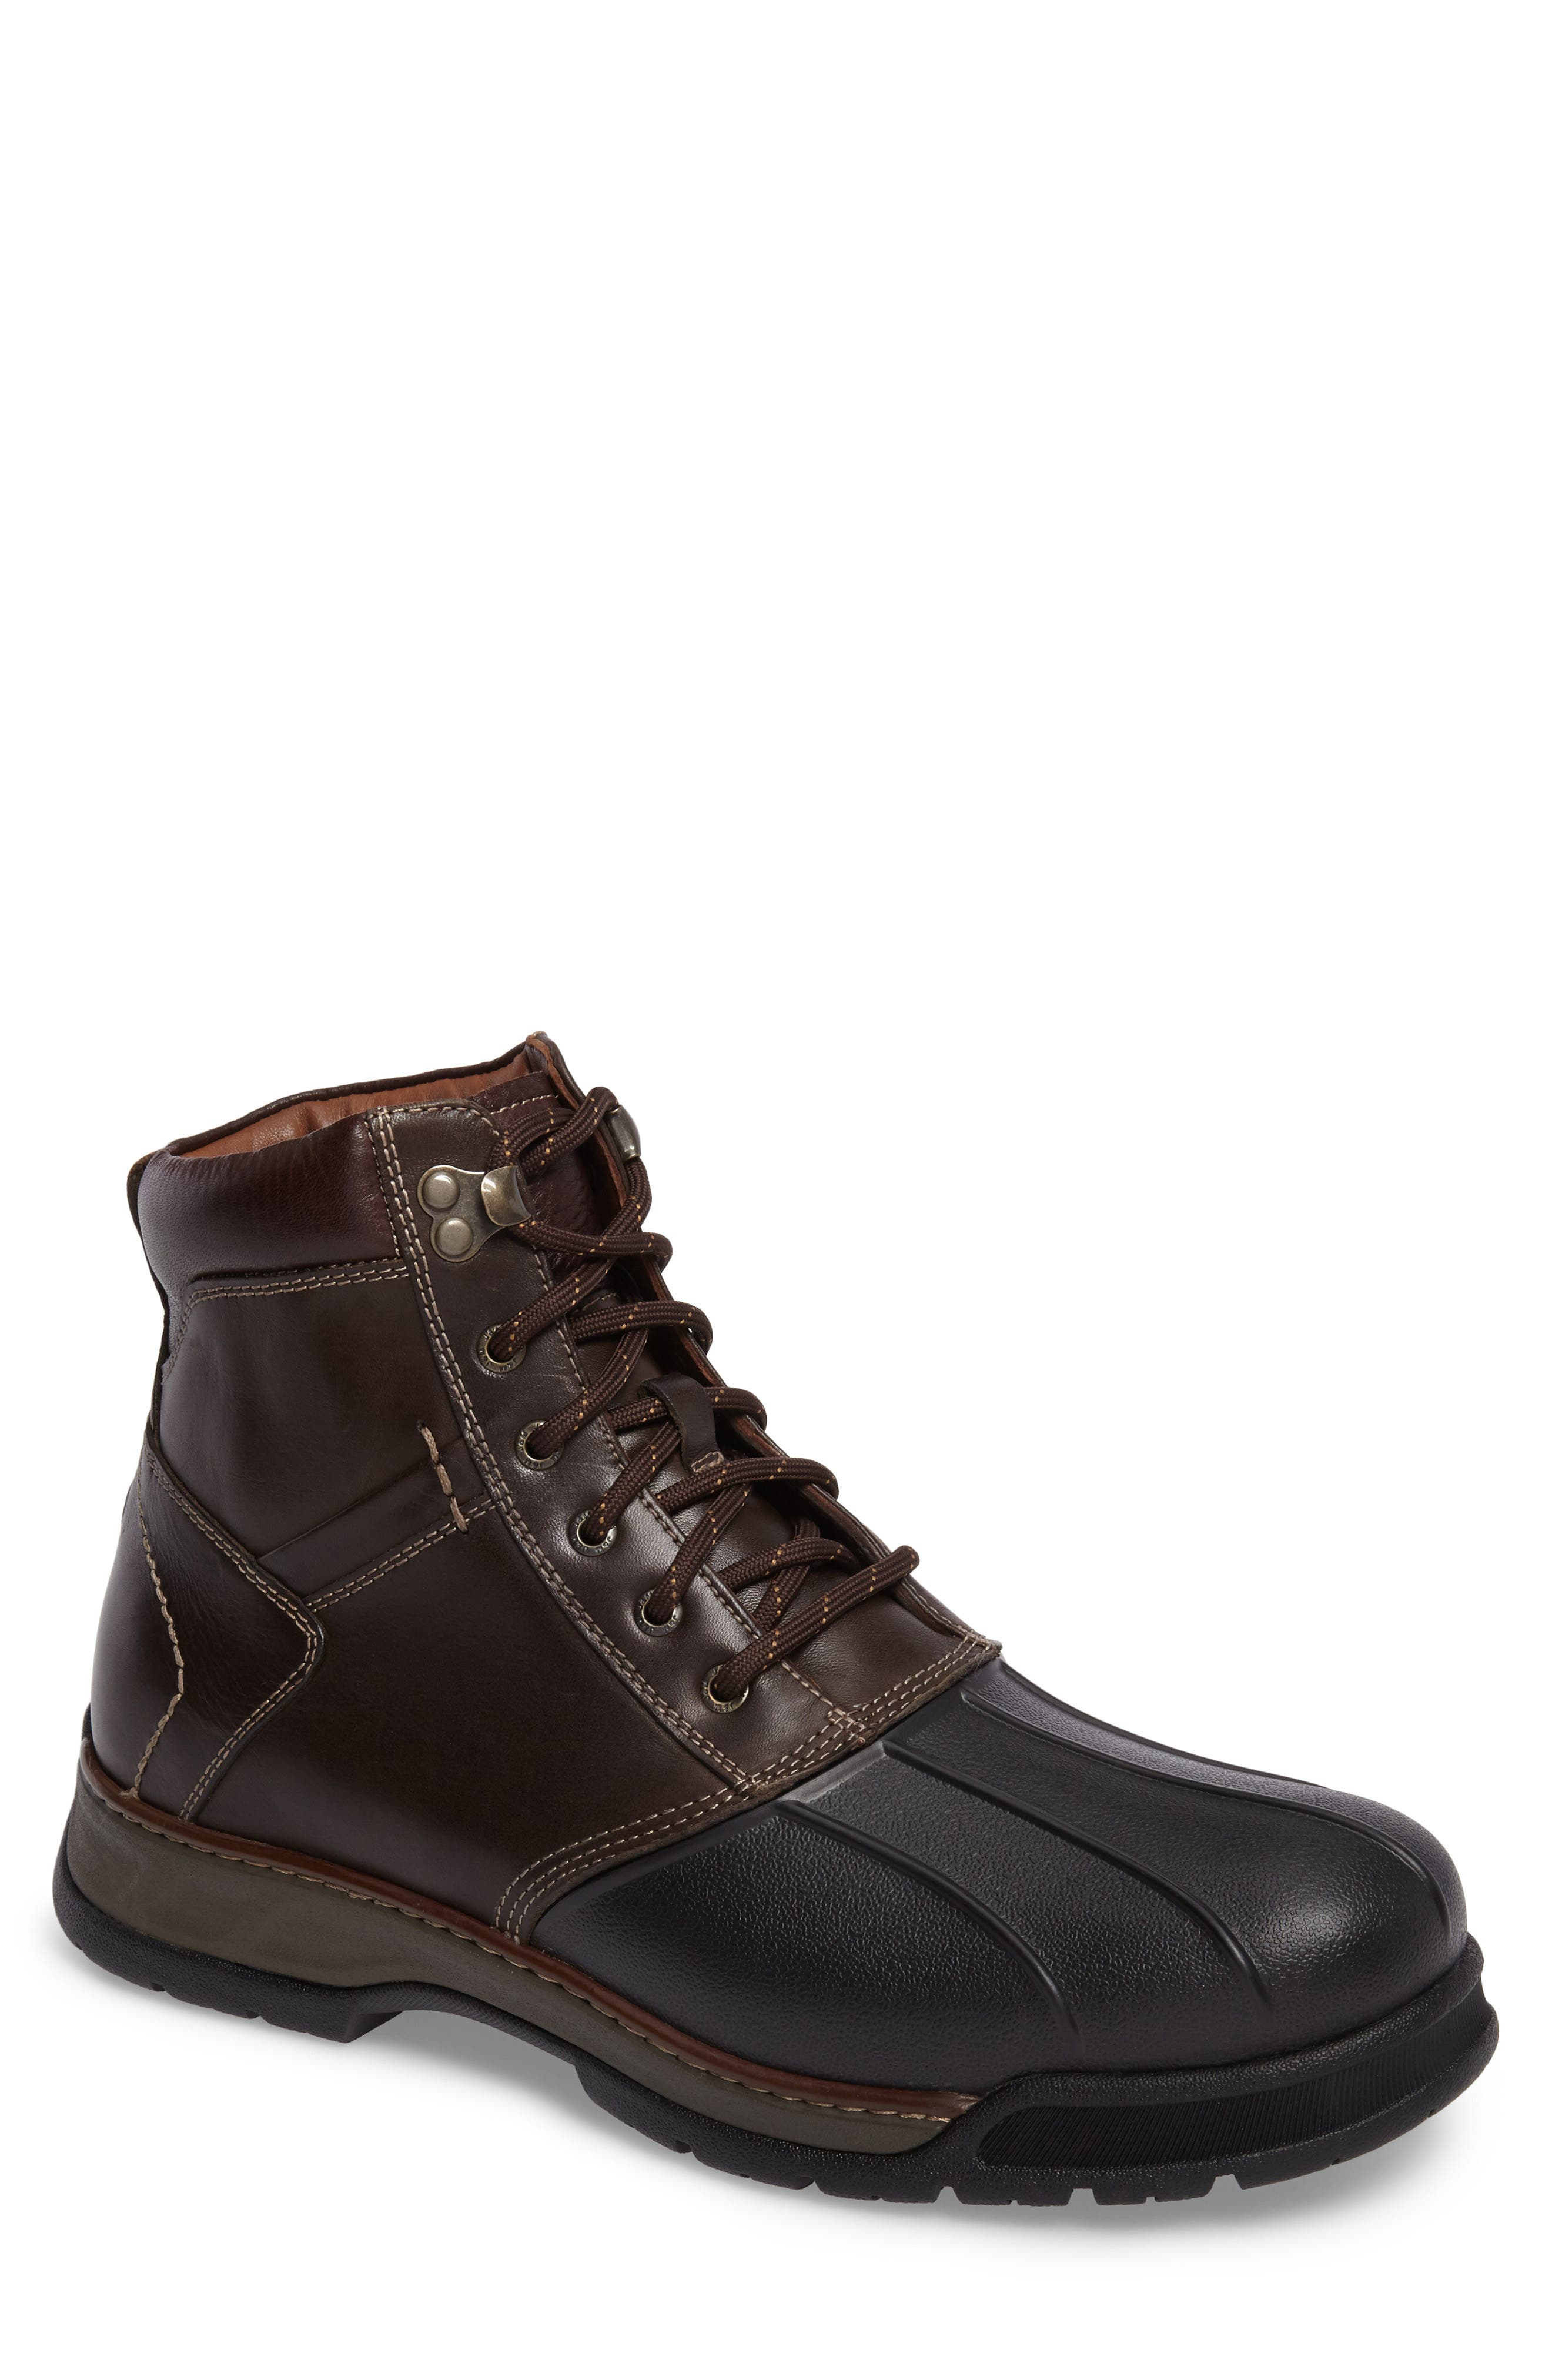 Thompson Duck Boot,                         Main,                         color,